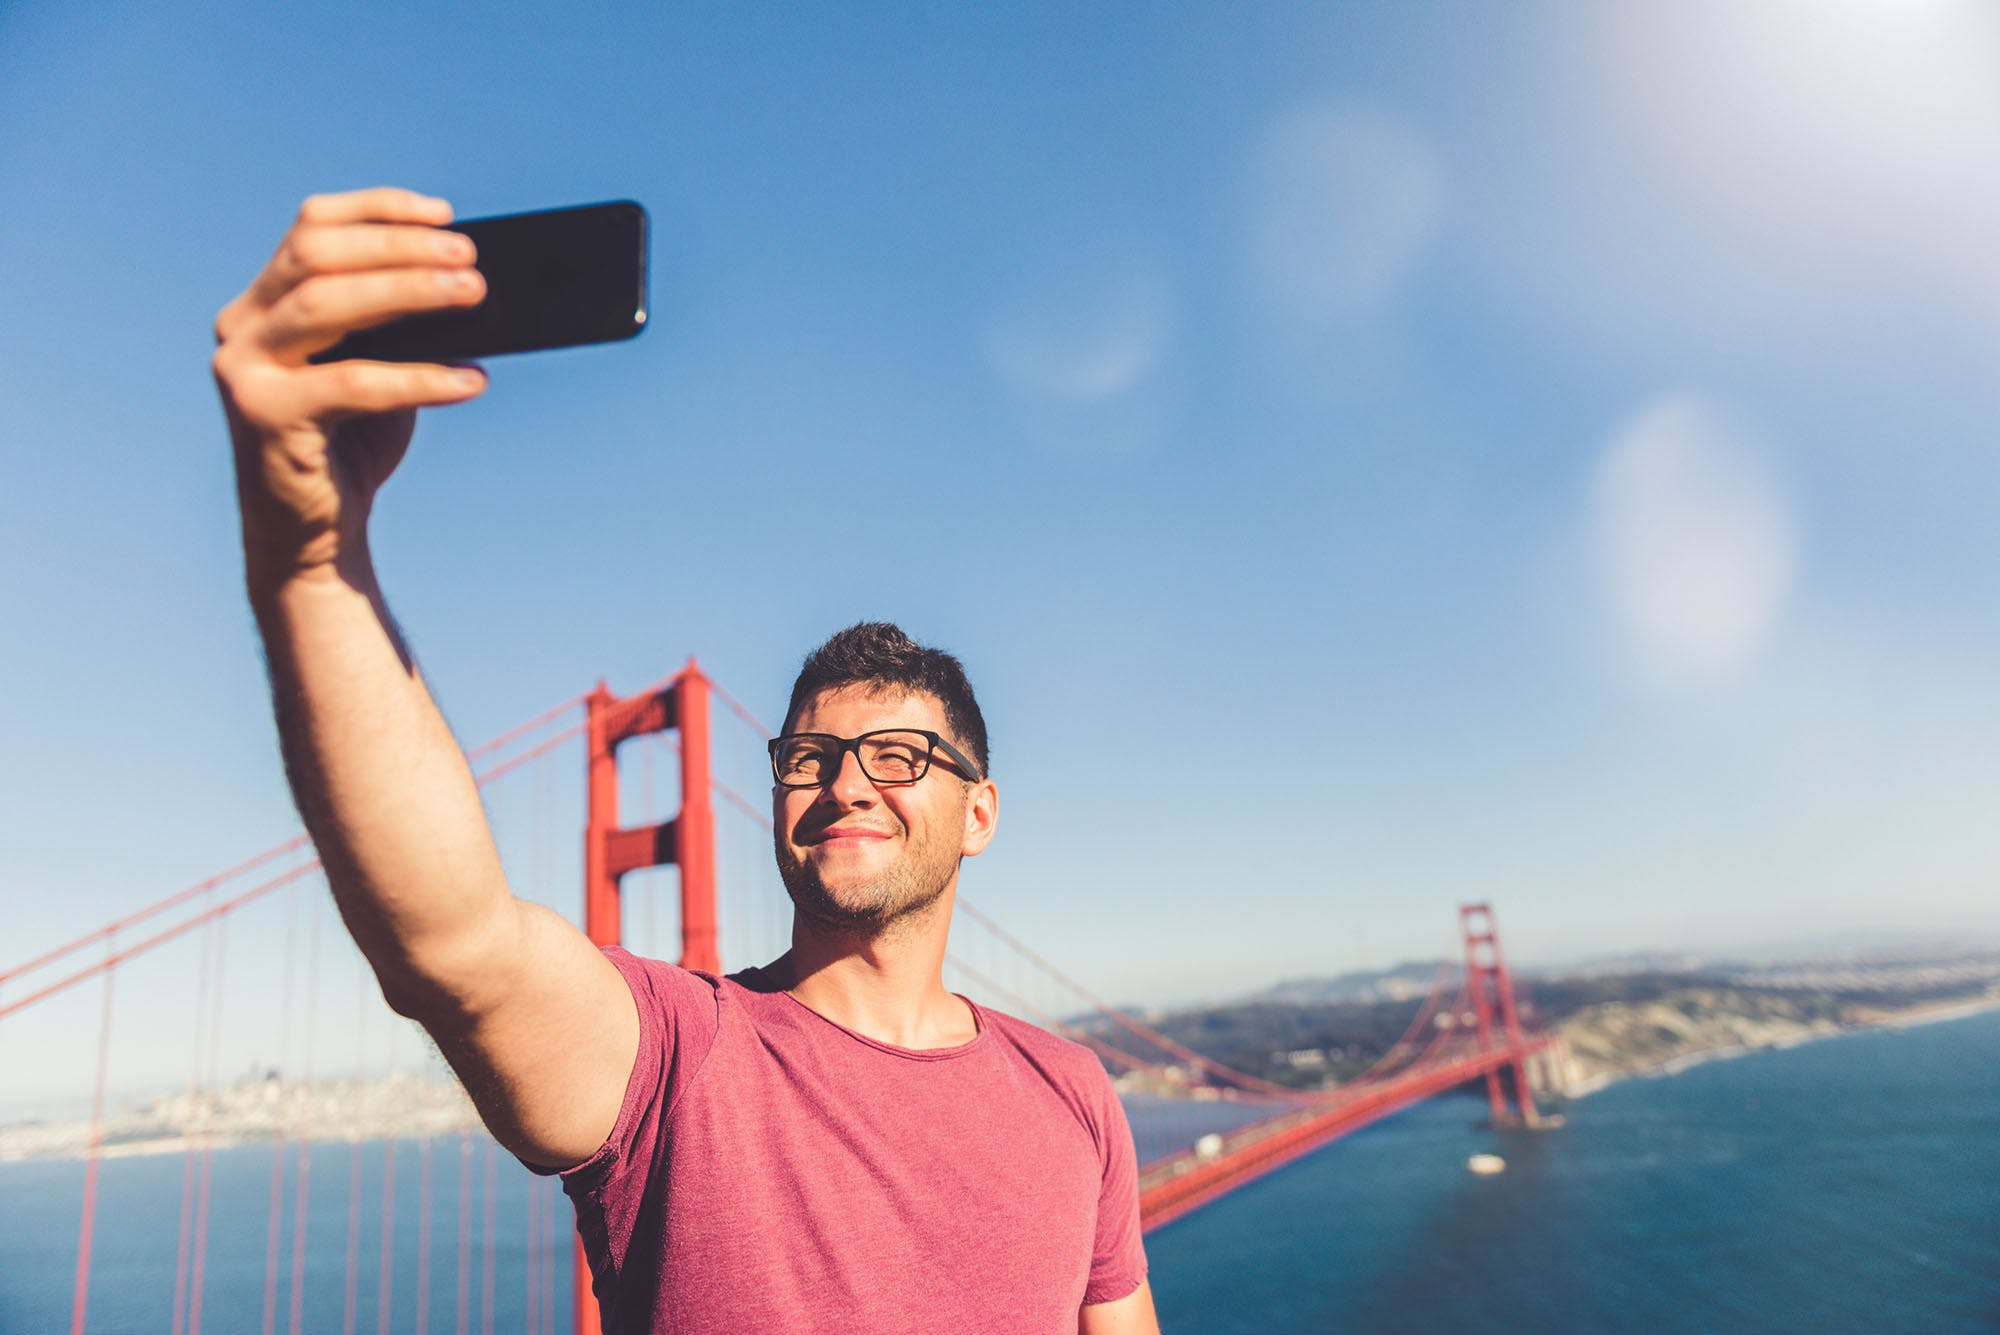 Young man taking a selfie by the Golden Gate Bridge in San Francisco